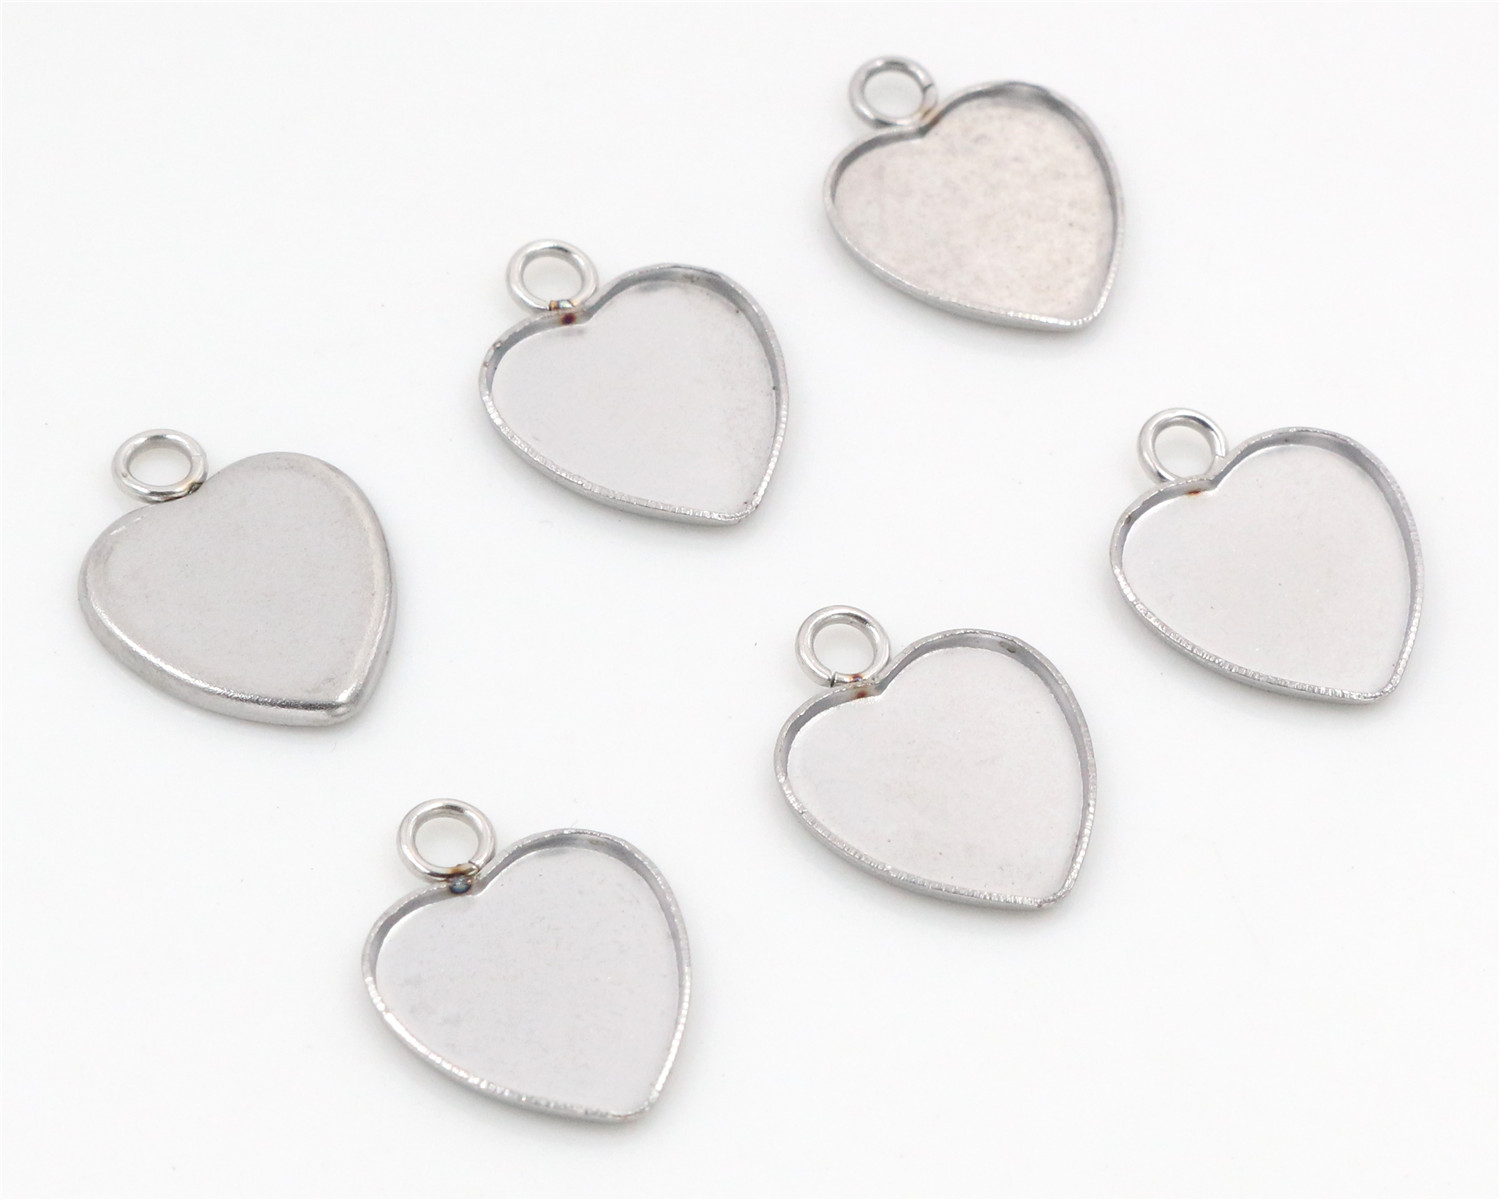 20pcs 12mm Heart Inner Size Stainless Steel Material Simple Style Cabochon Base Cameo Setting Charms Pendant Tray-T7-4120pcs 12mm Heart Inner Size Stainless Steel Material Simple Style Cabochon Base Cameo Setting Charms Pendant Tray-T7-41